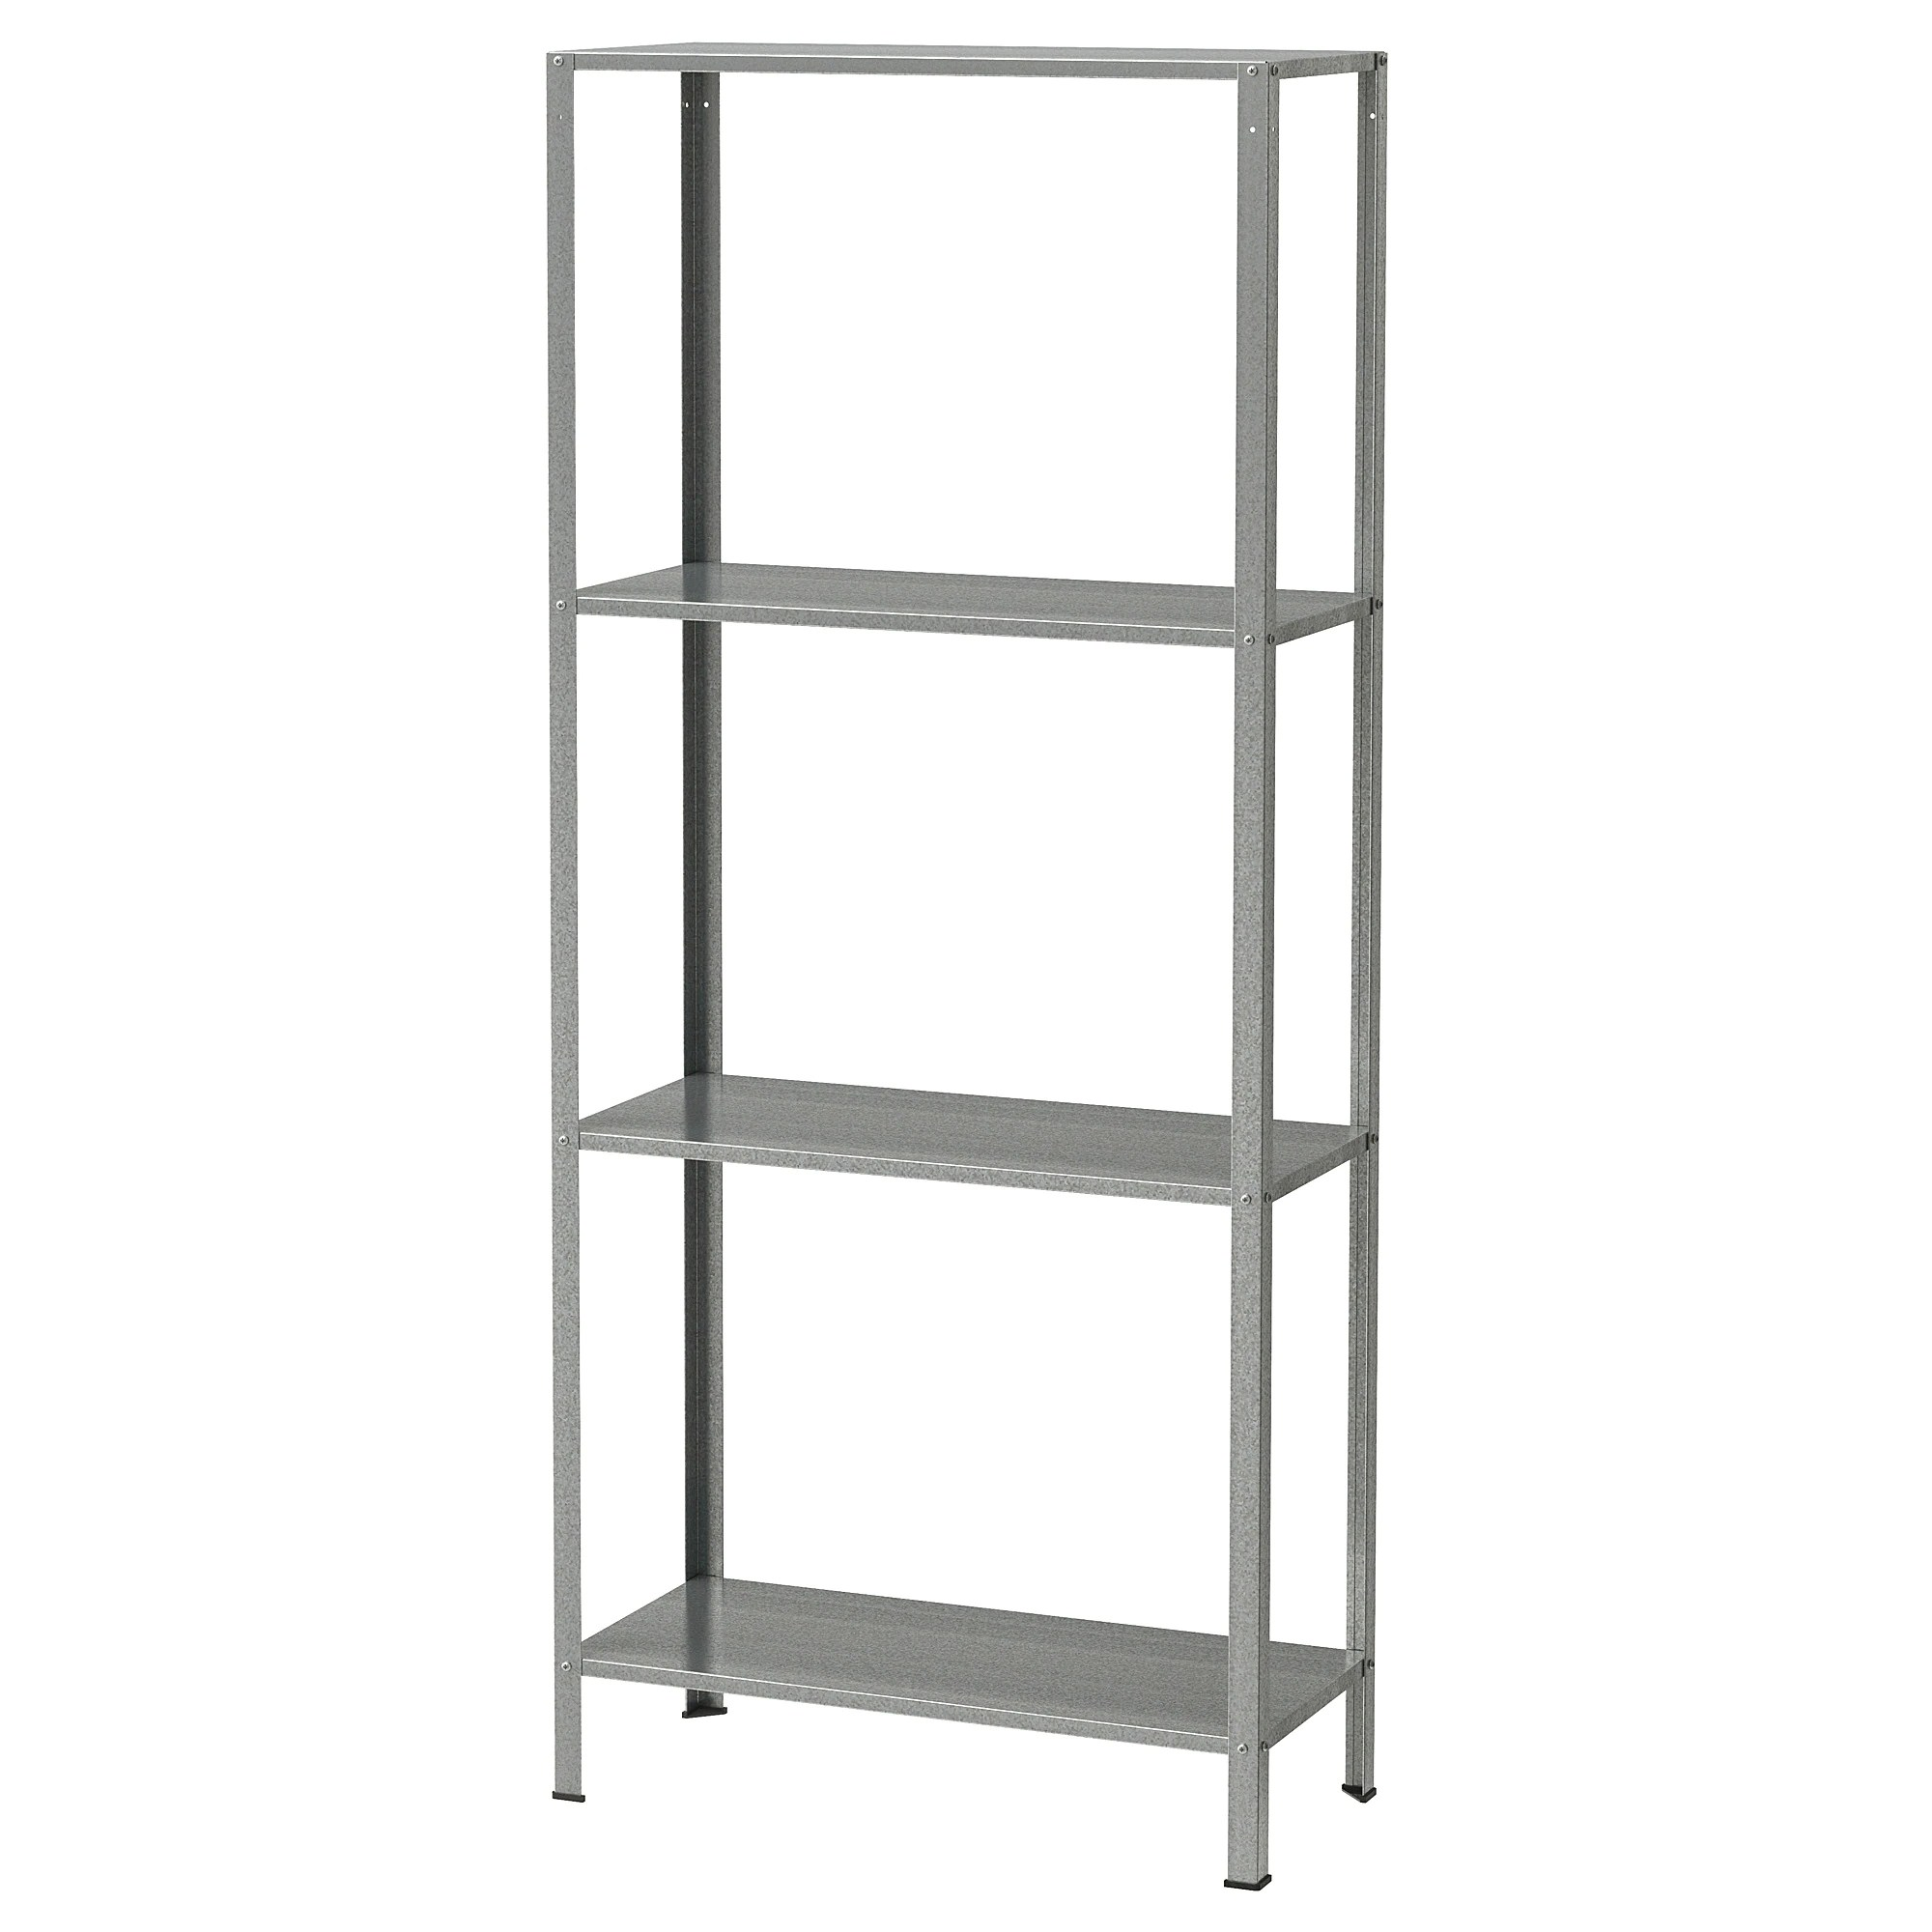 Metal Shelving Hyllis Shelf Unit Indoor Outdoor Galvanized